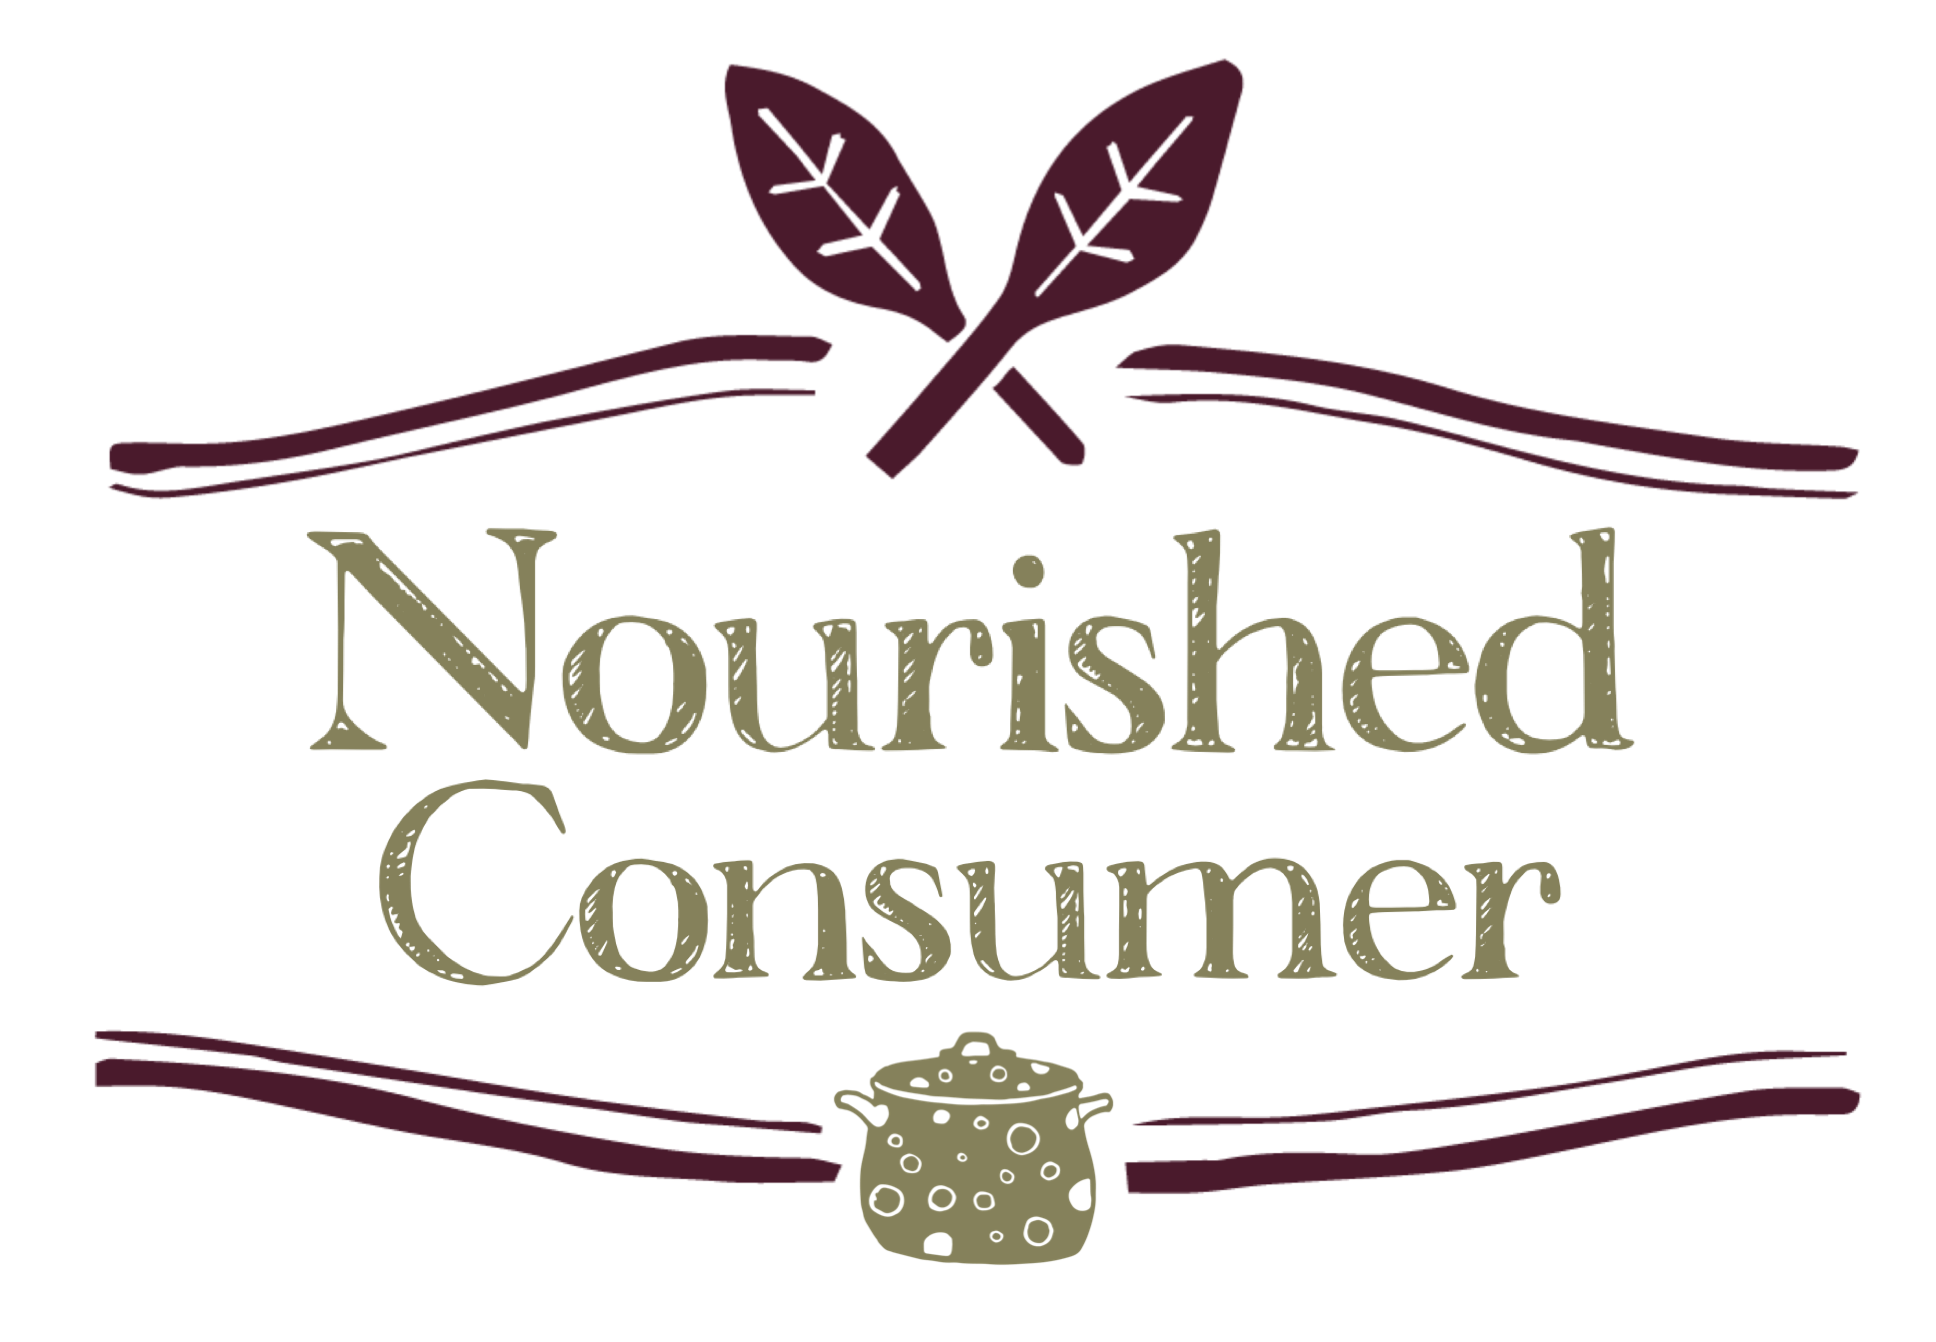 Nourished Consumer